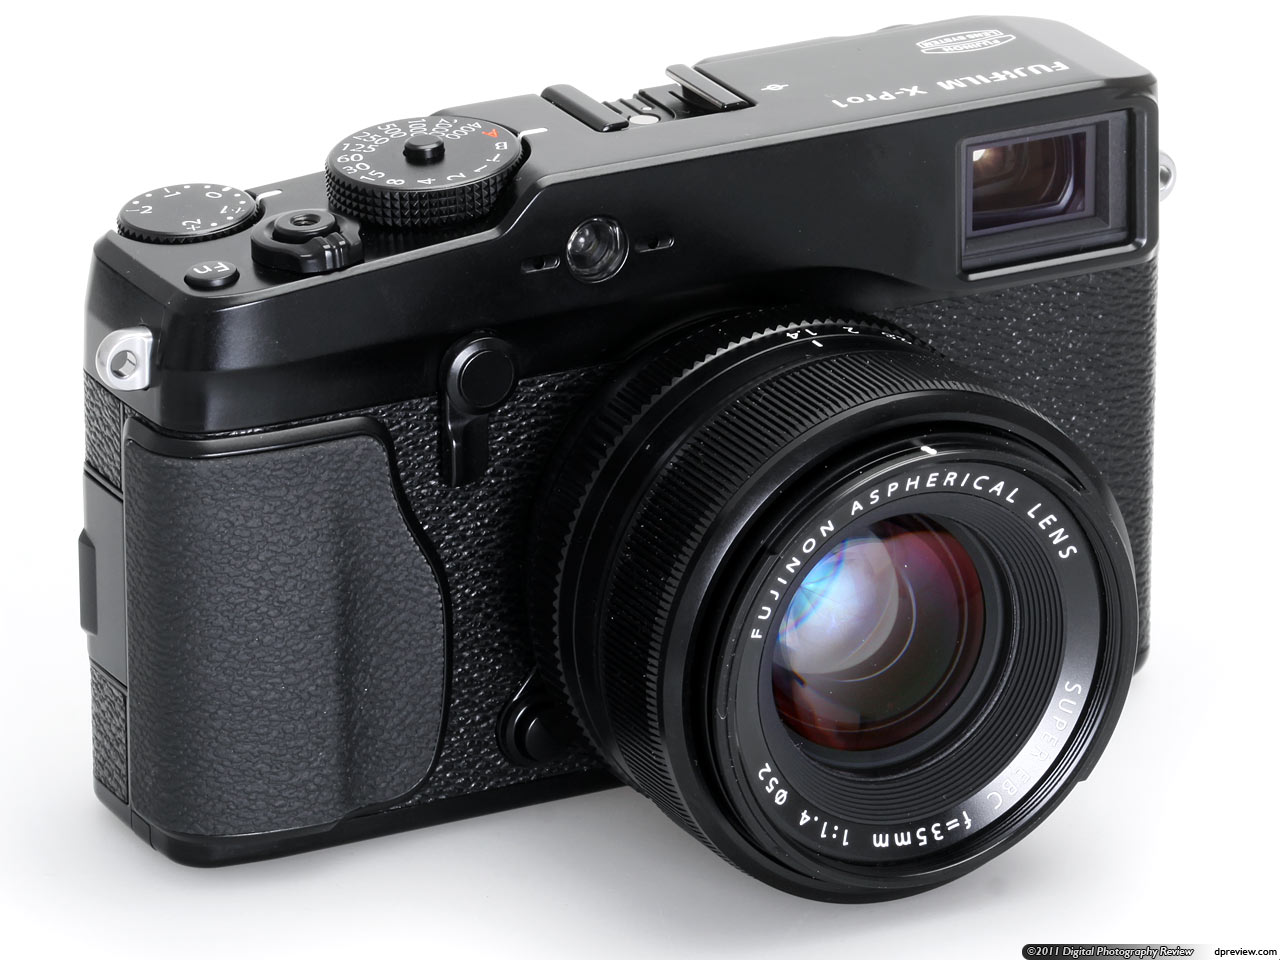 fuji x100 firmware update instructions